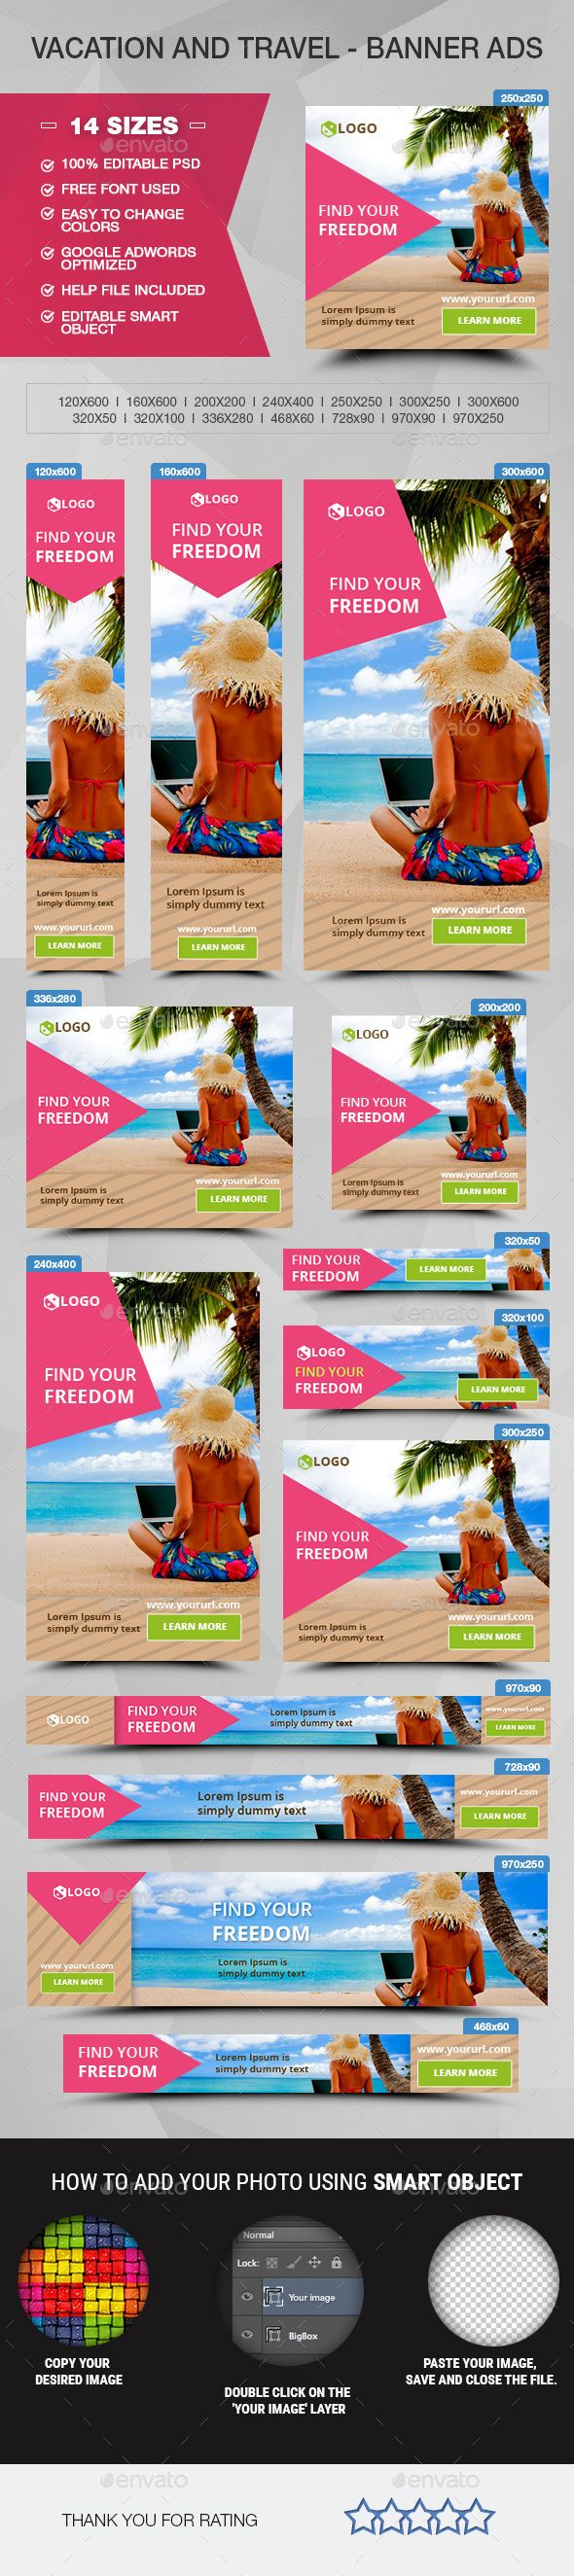 Travel Promotion Banners Curly Ribbon Banners